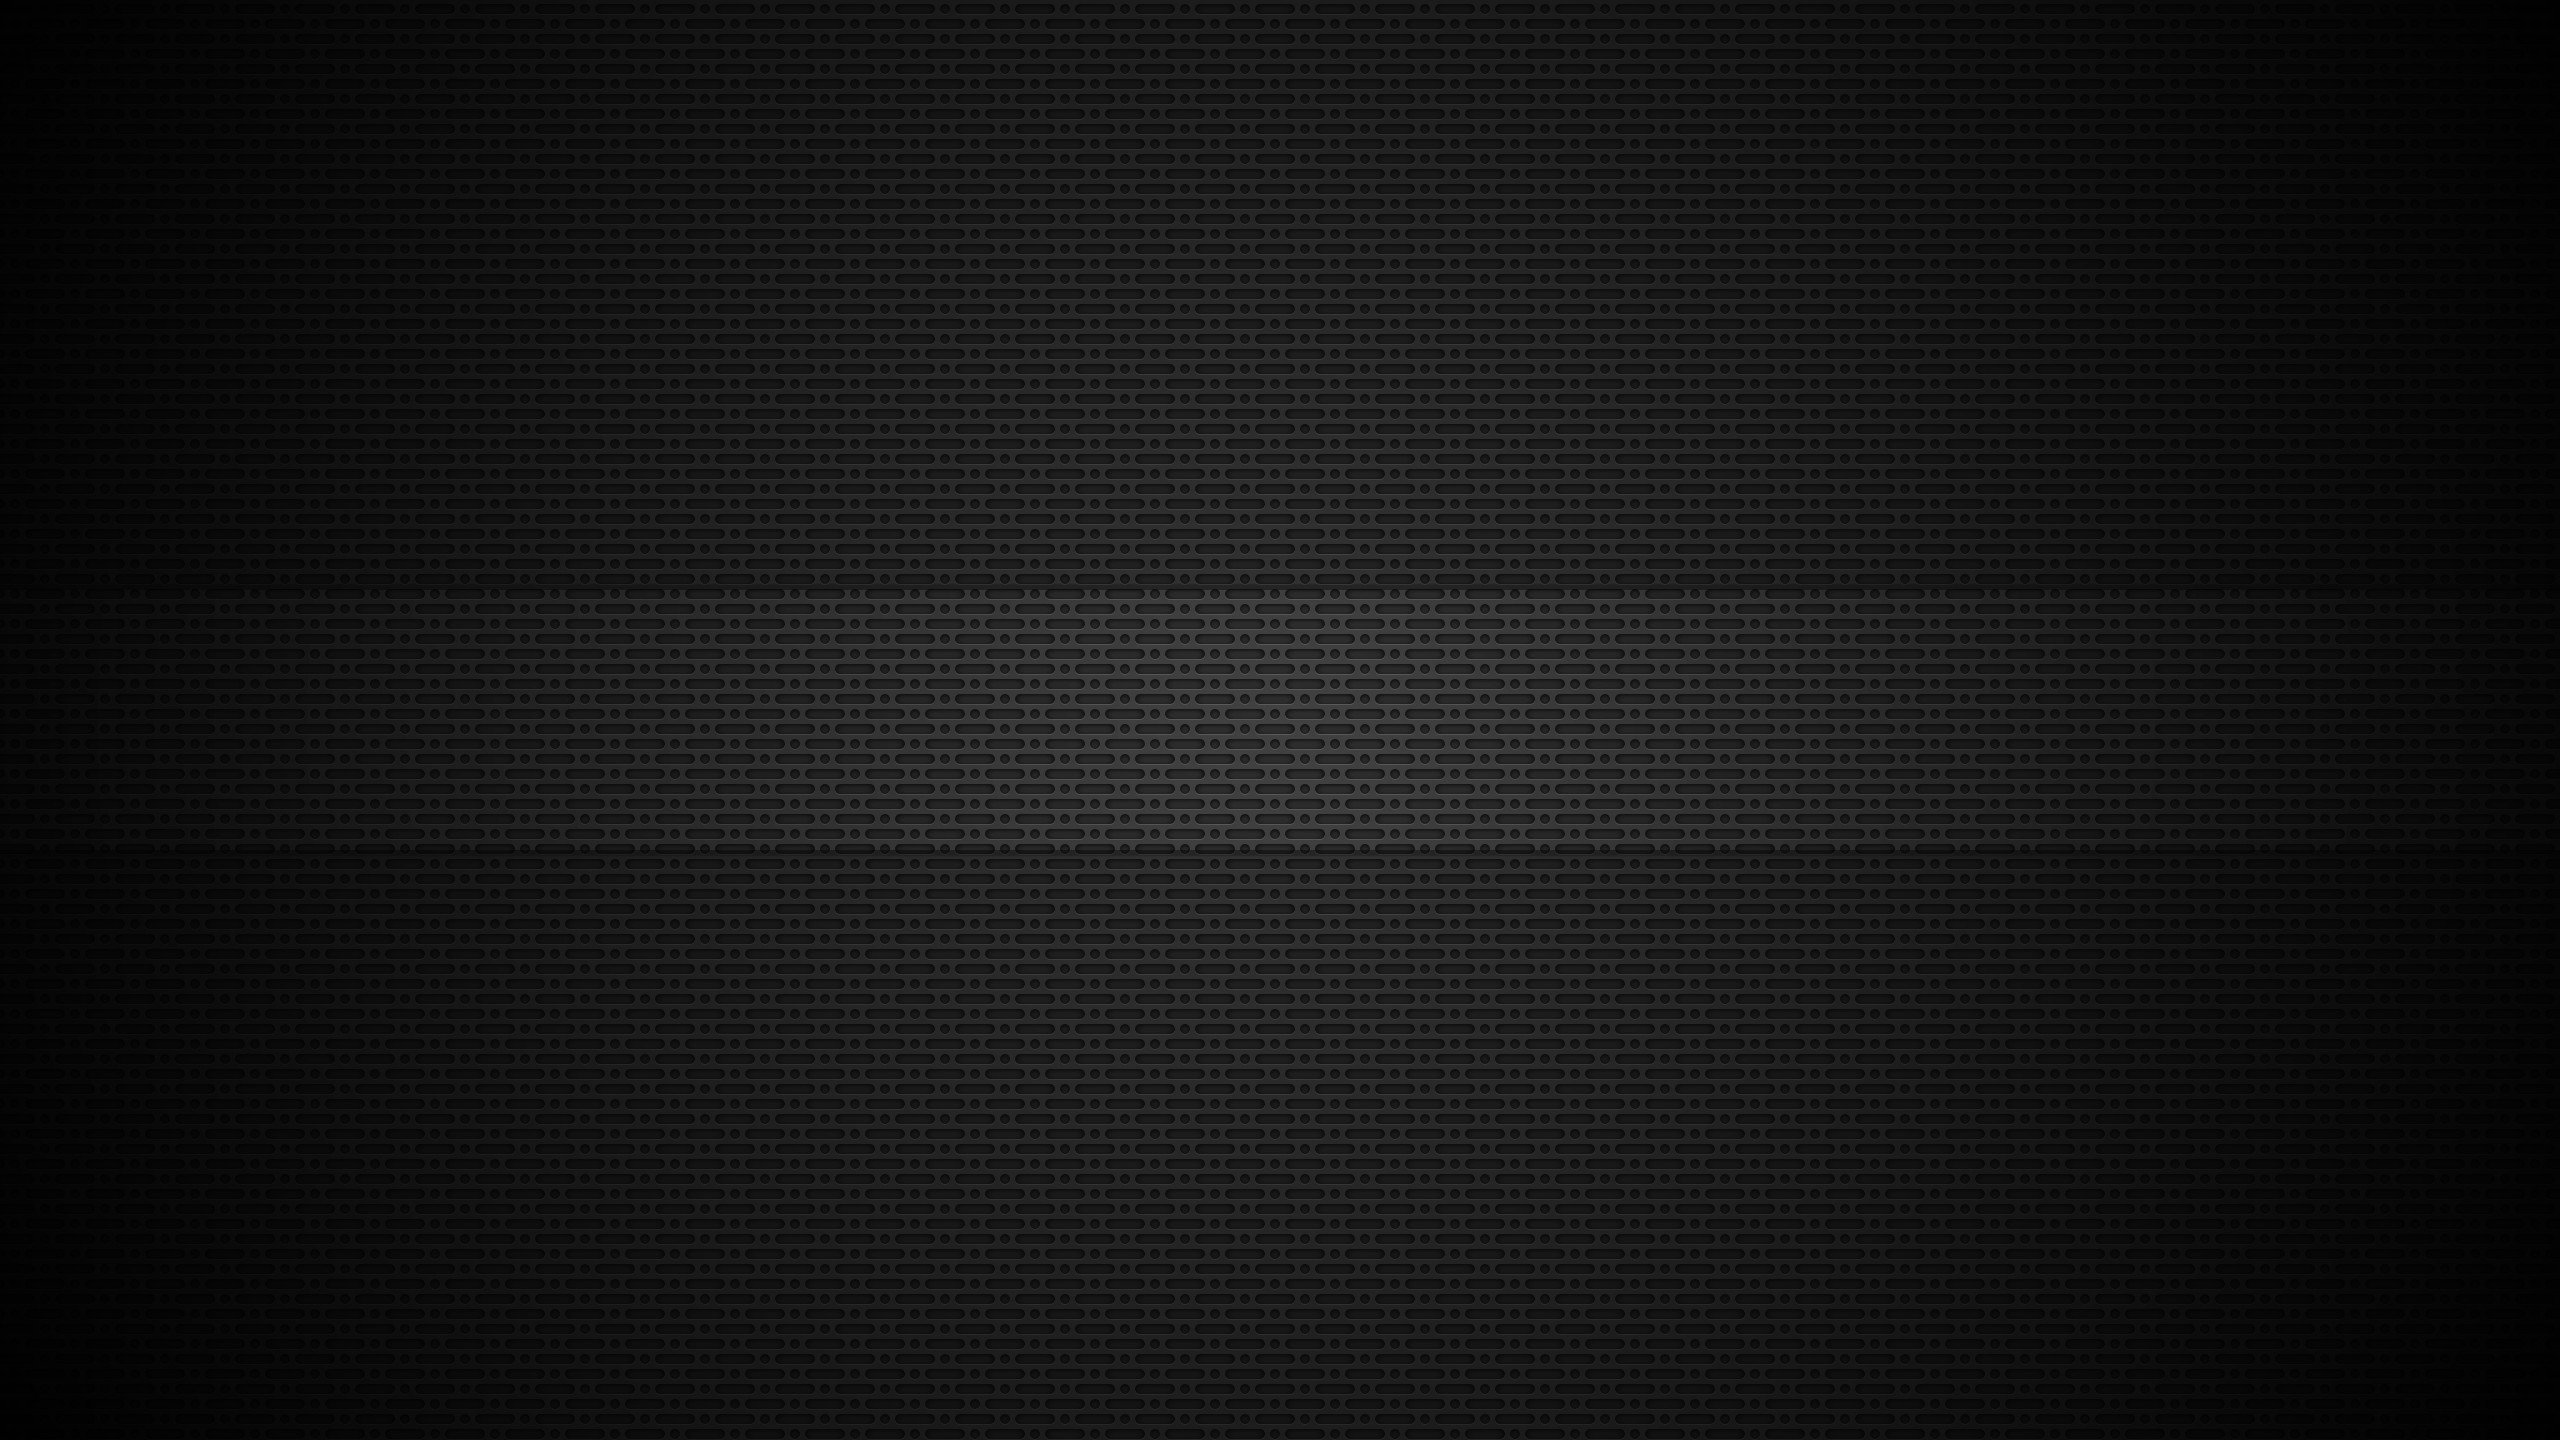 86 Youtube Banner Wallpapers on WallpaperPlay 2560x1440